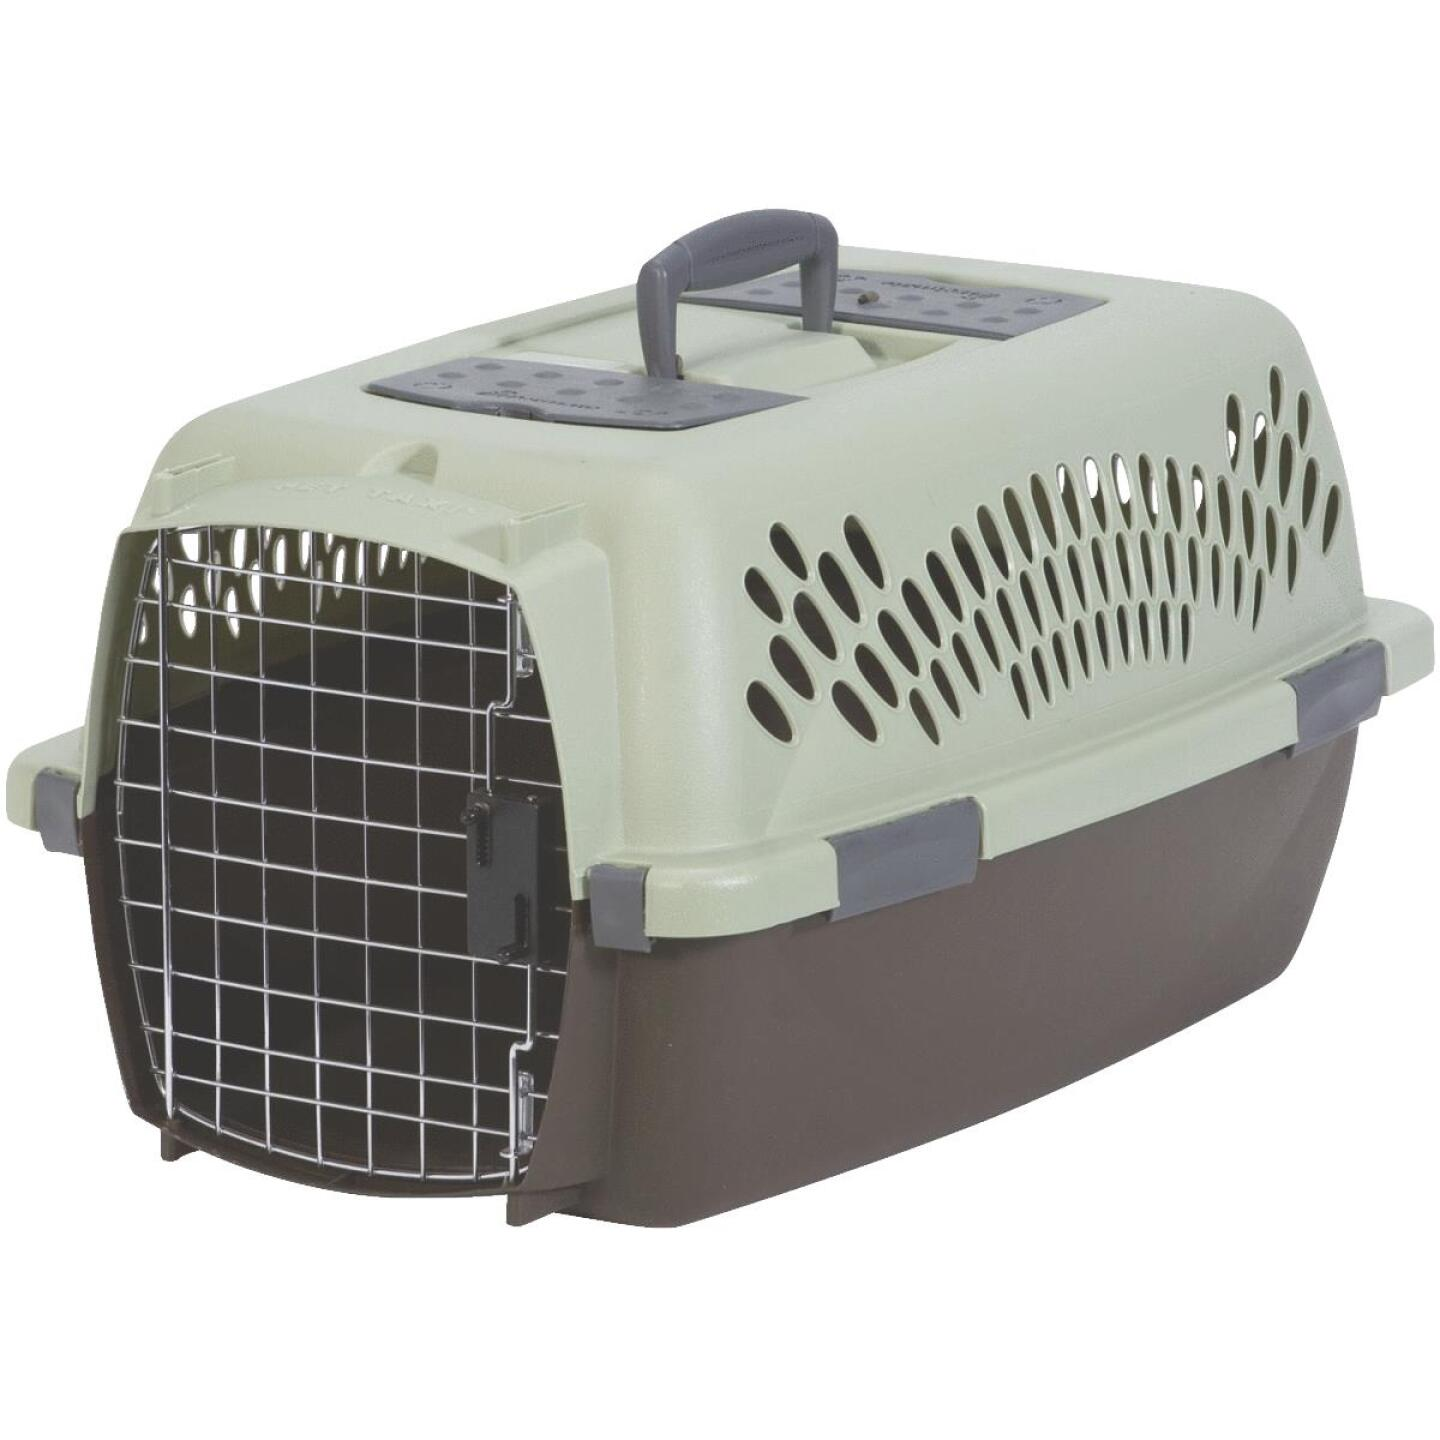 Petmate Aspen Pet 24.1 In. x 16.73 In. x 14.5 In. 15 to 20 Lb. Intermediate Fashion Pet Porter Image 1